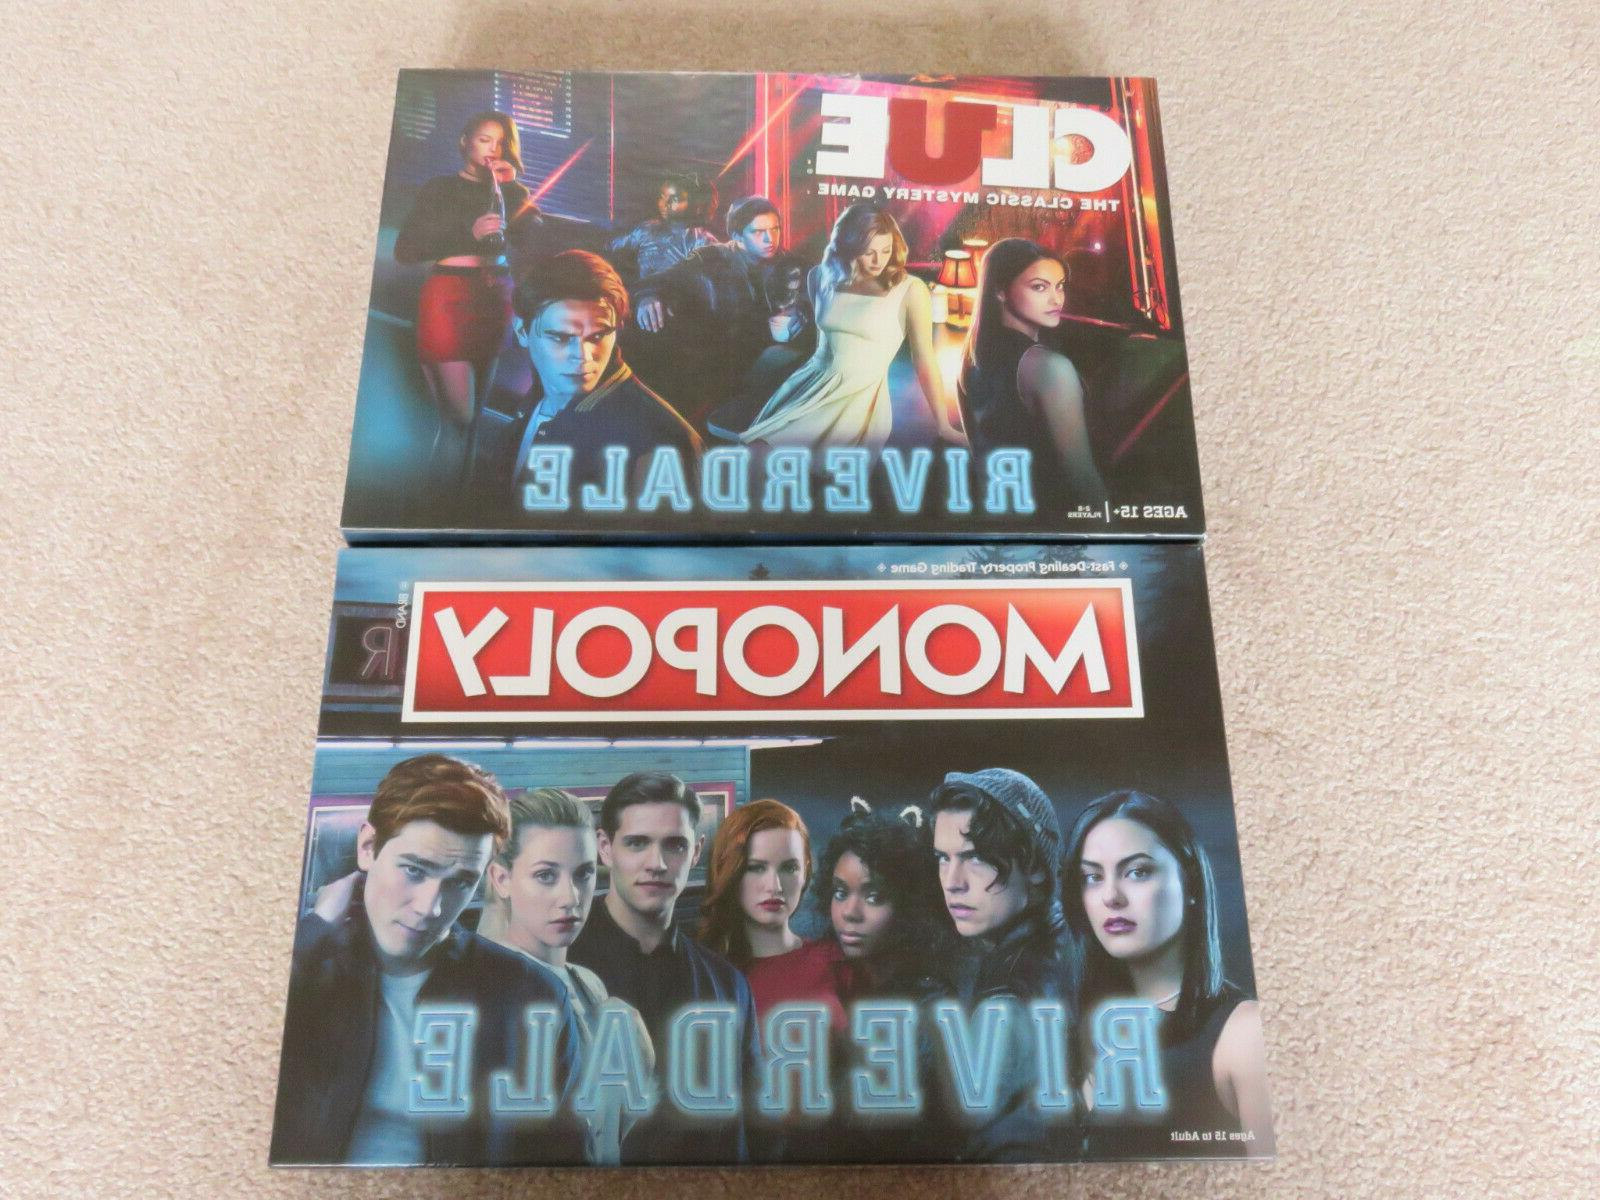 riverdale clue and board game collection 2